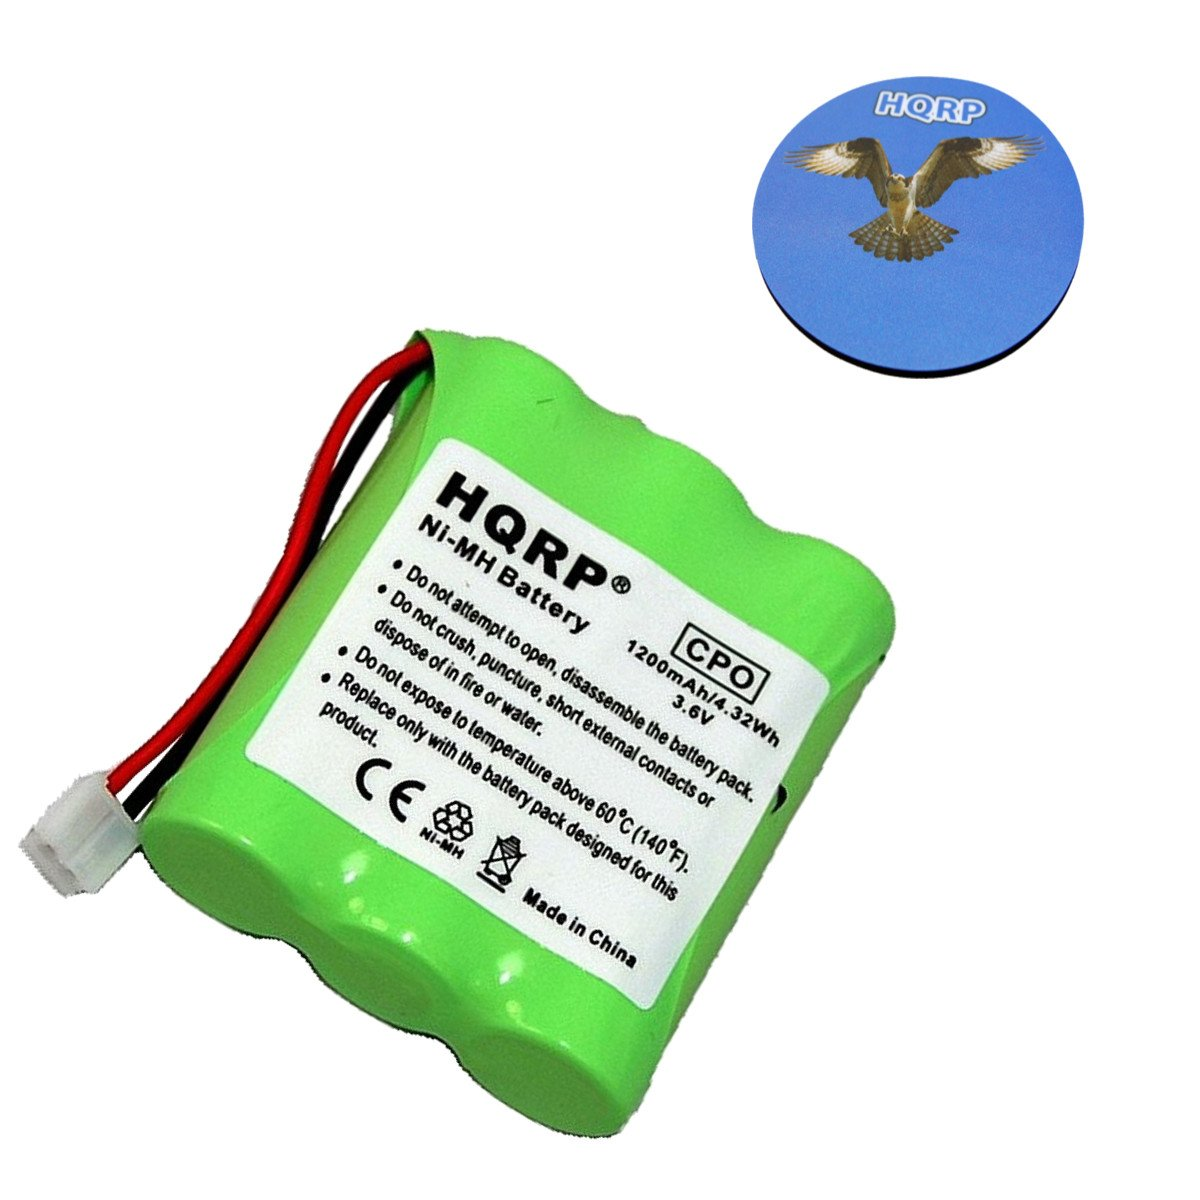 HQRP Cordless Phone Battery compatible with General Electric GE 5-2548/52548, 27831 Replacement plus Coaster